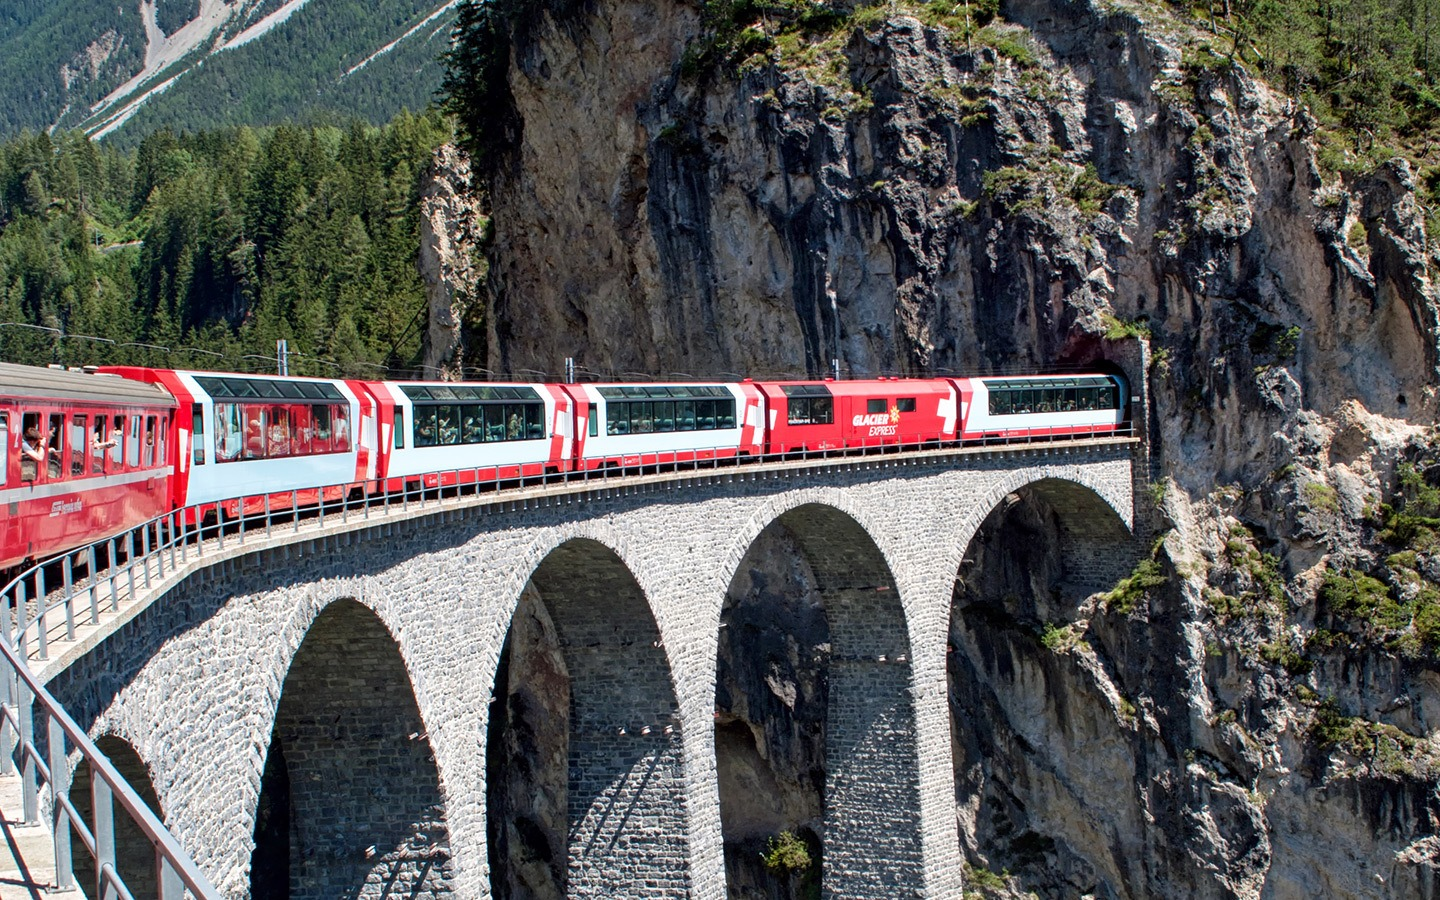 Glacier Express scenic train in Switzerland